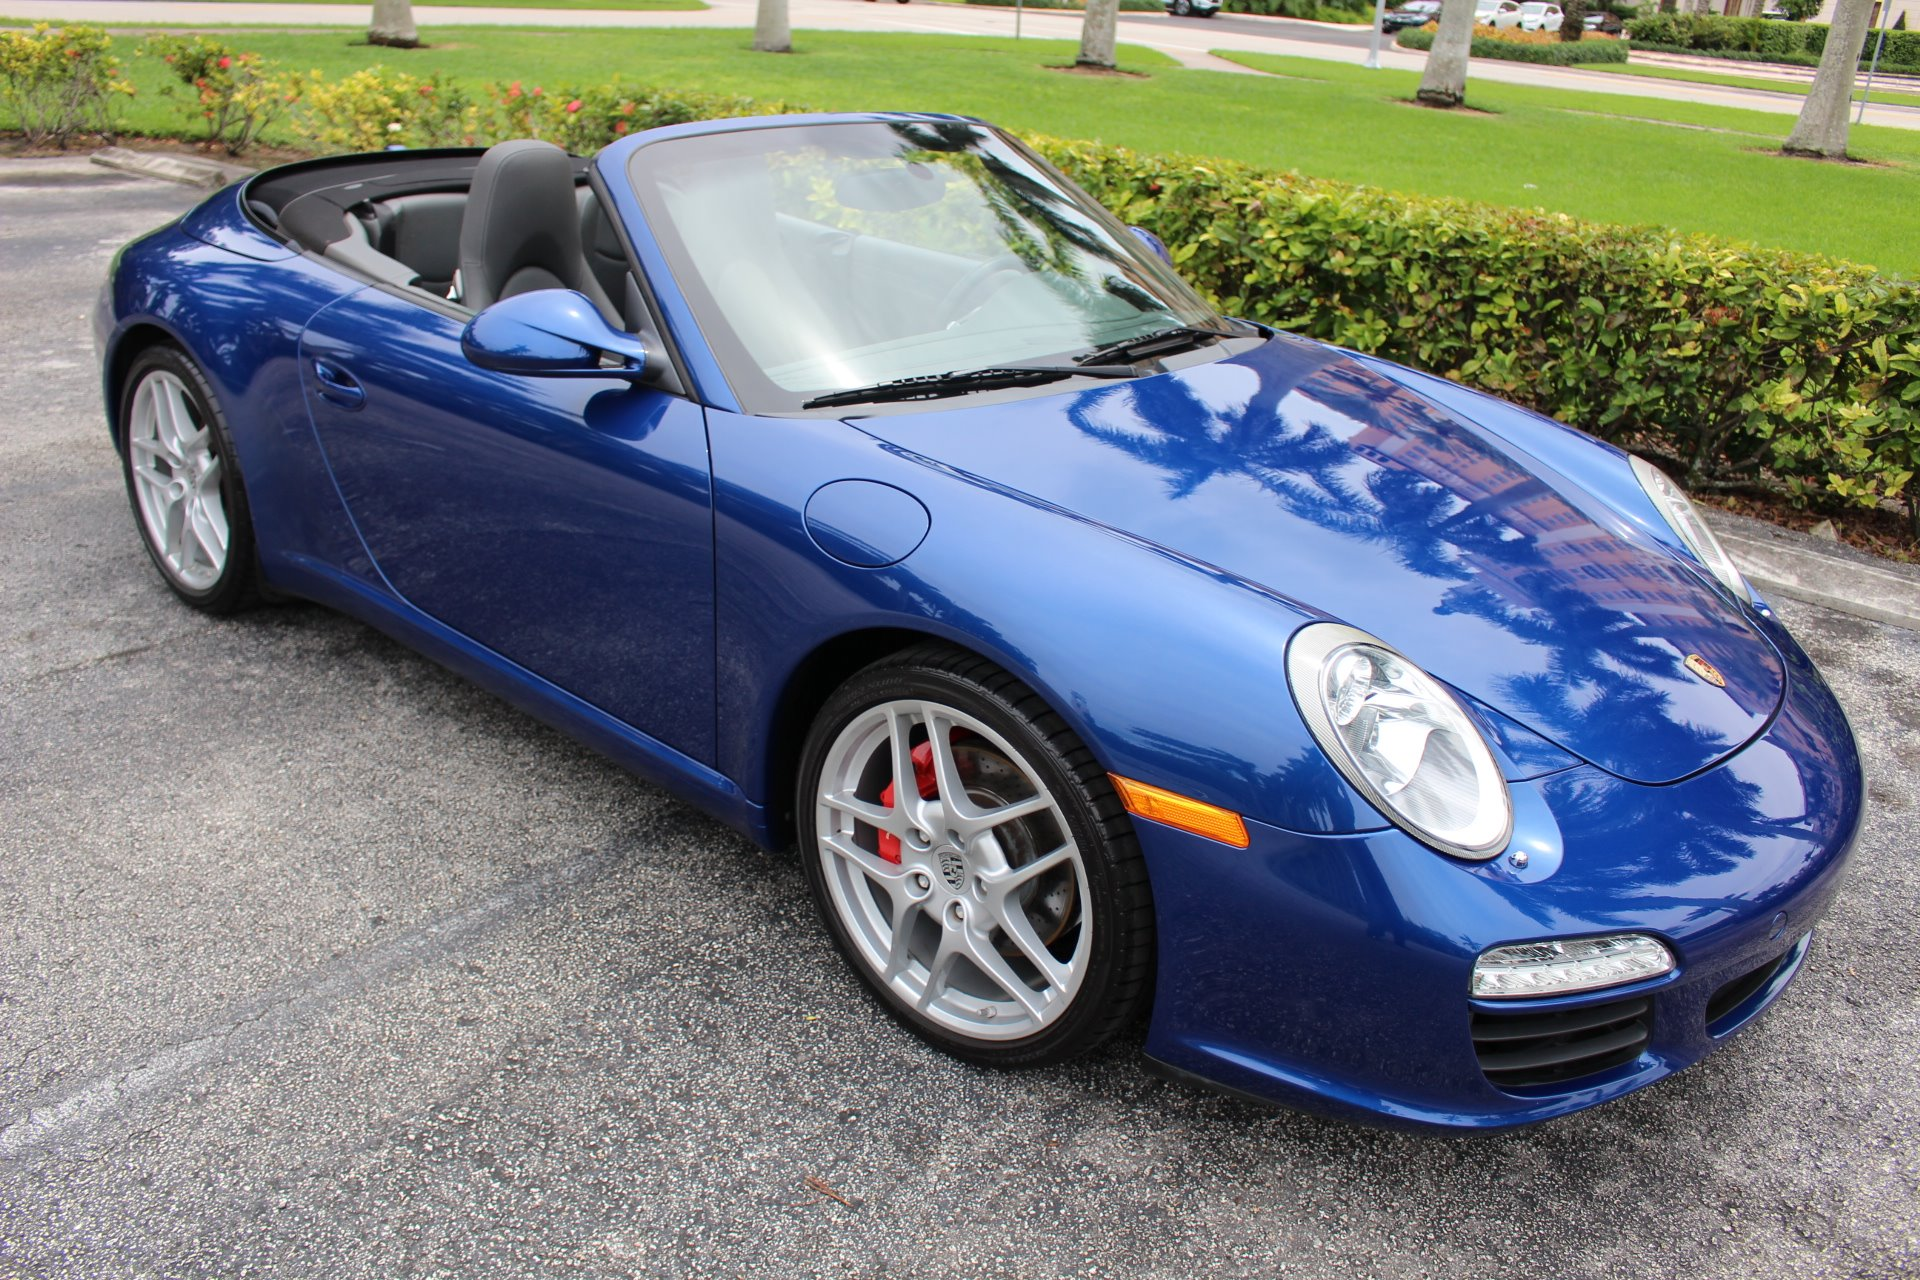 Used 2009 Porsche 911 Carrera S for sale $47,850 at The Gables Sports Cars in Miami FL 33146 3